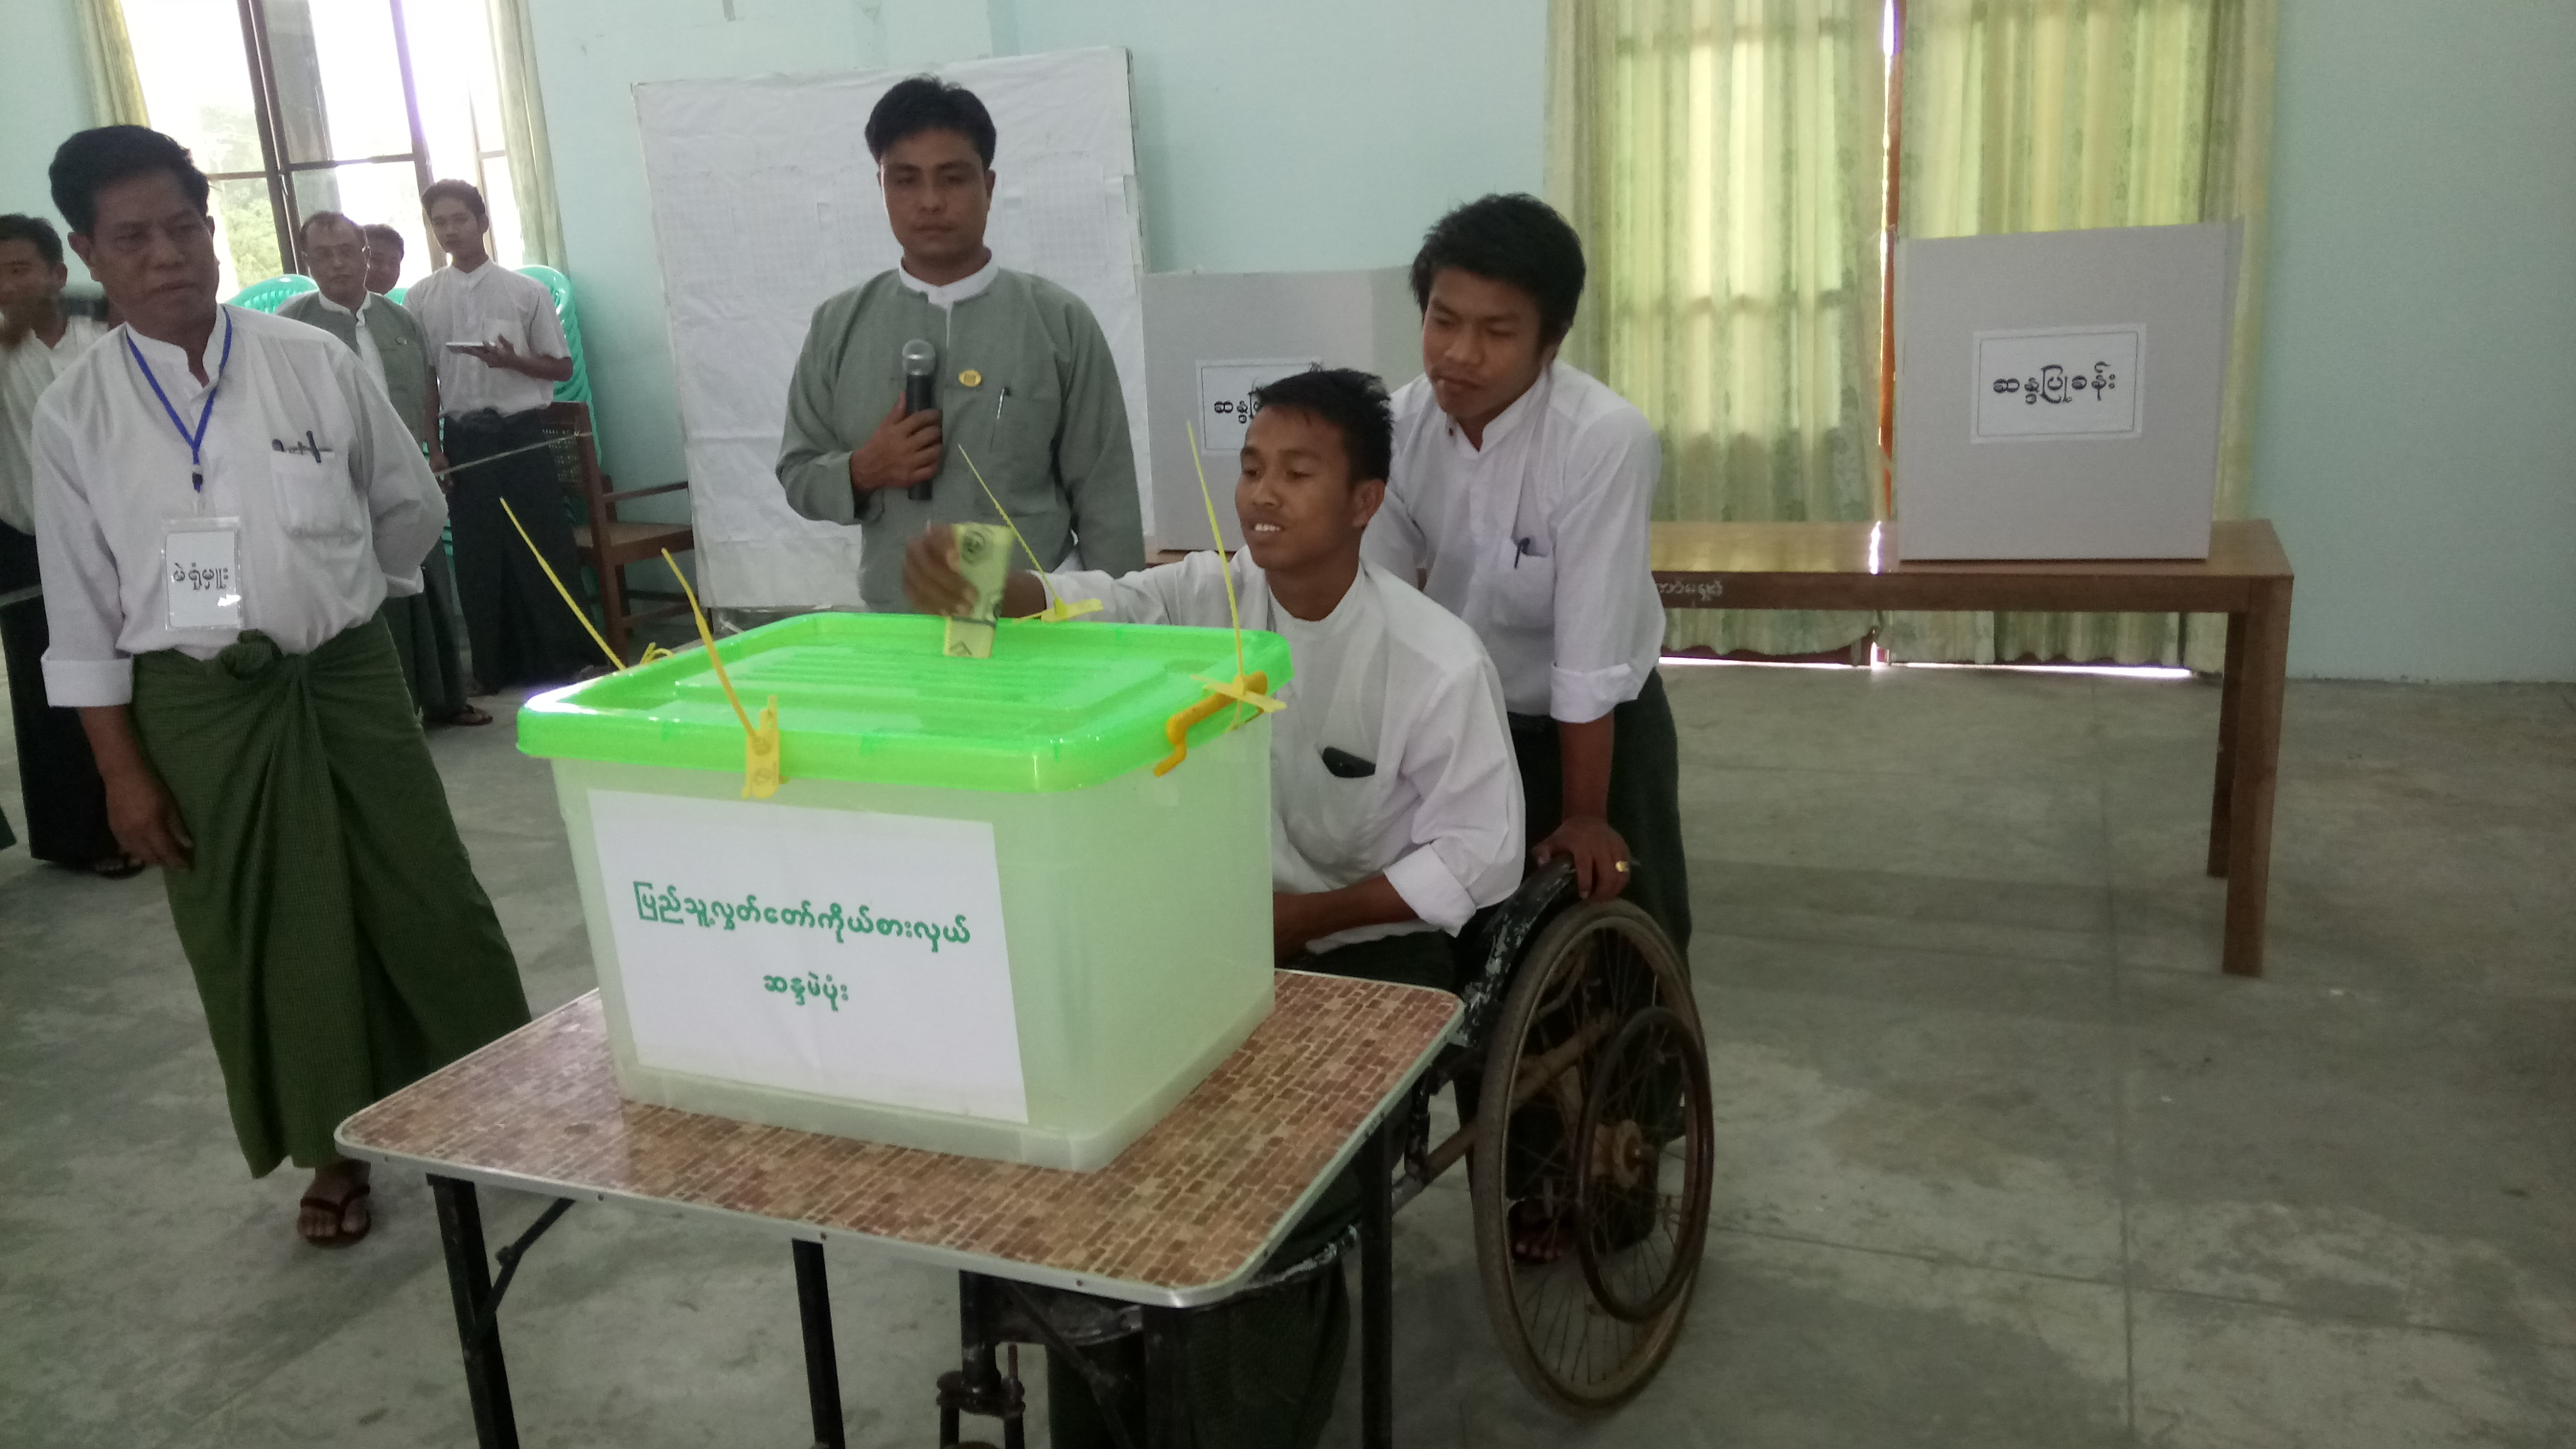 Election officials of wards and village-tracts of Monywa, Sagaing region, learning about challenges faced by Persons with Disabilities for access to polling stations - photo credit: Saket Ambarkhane